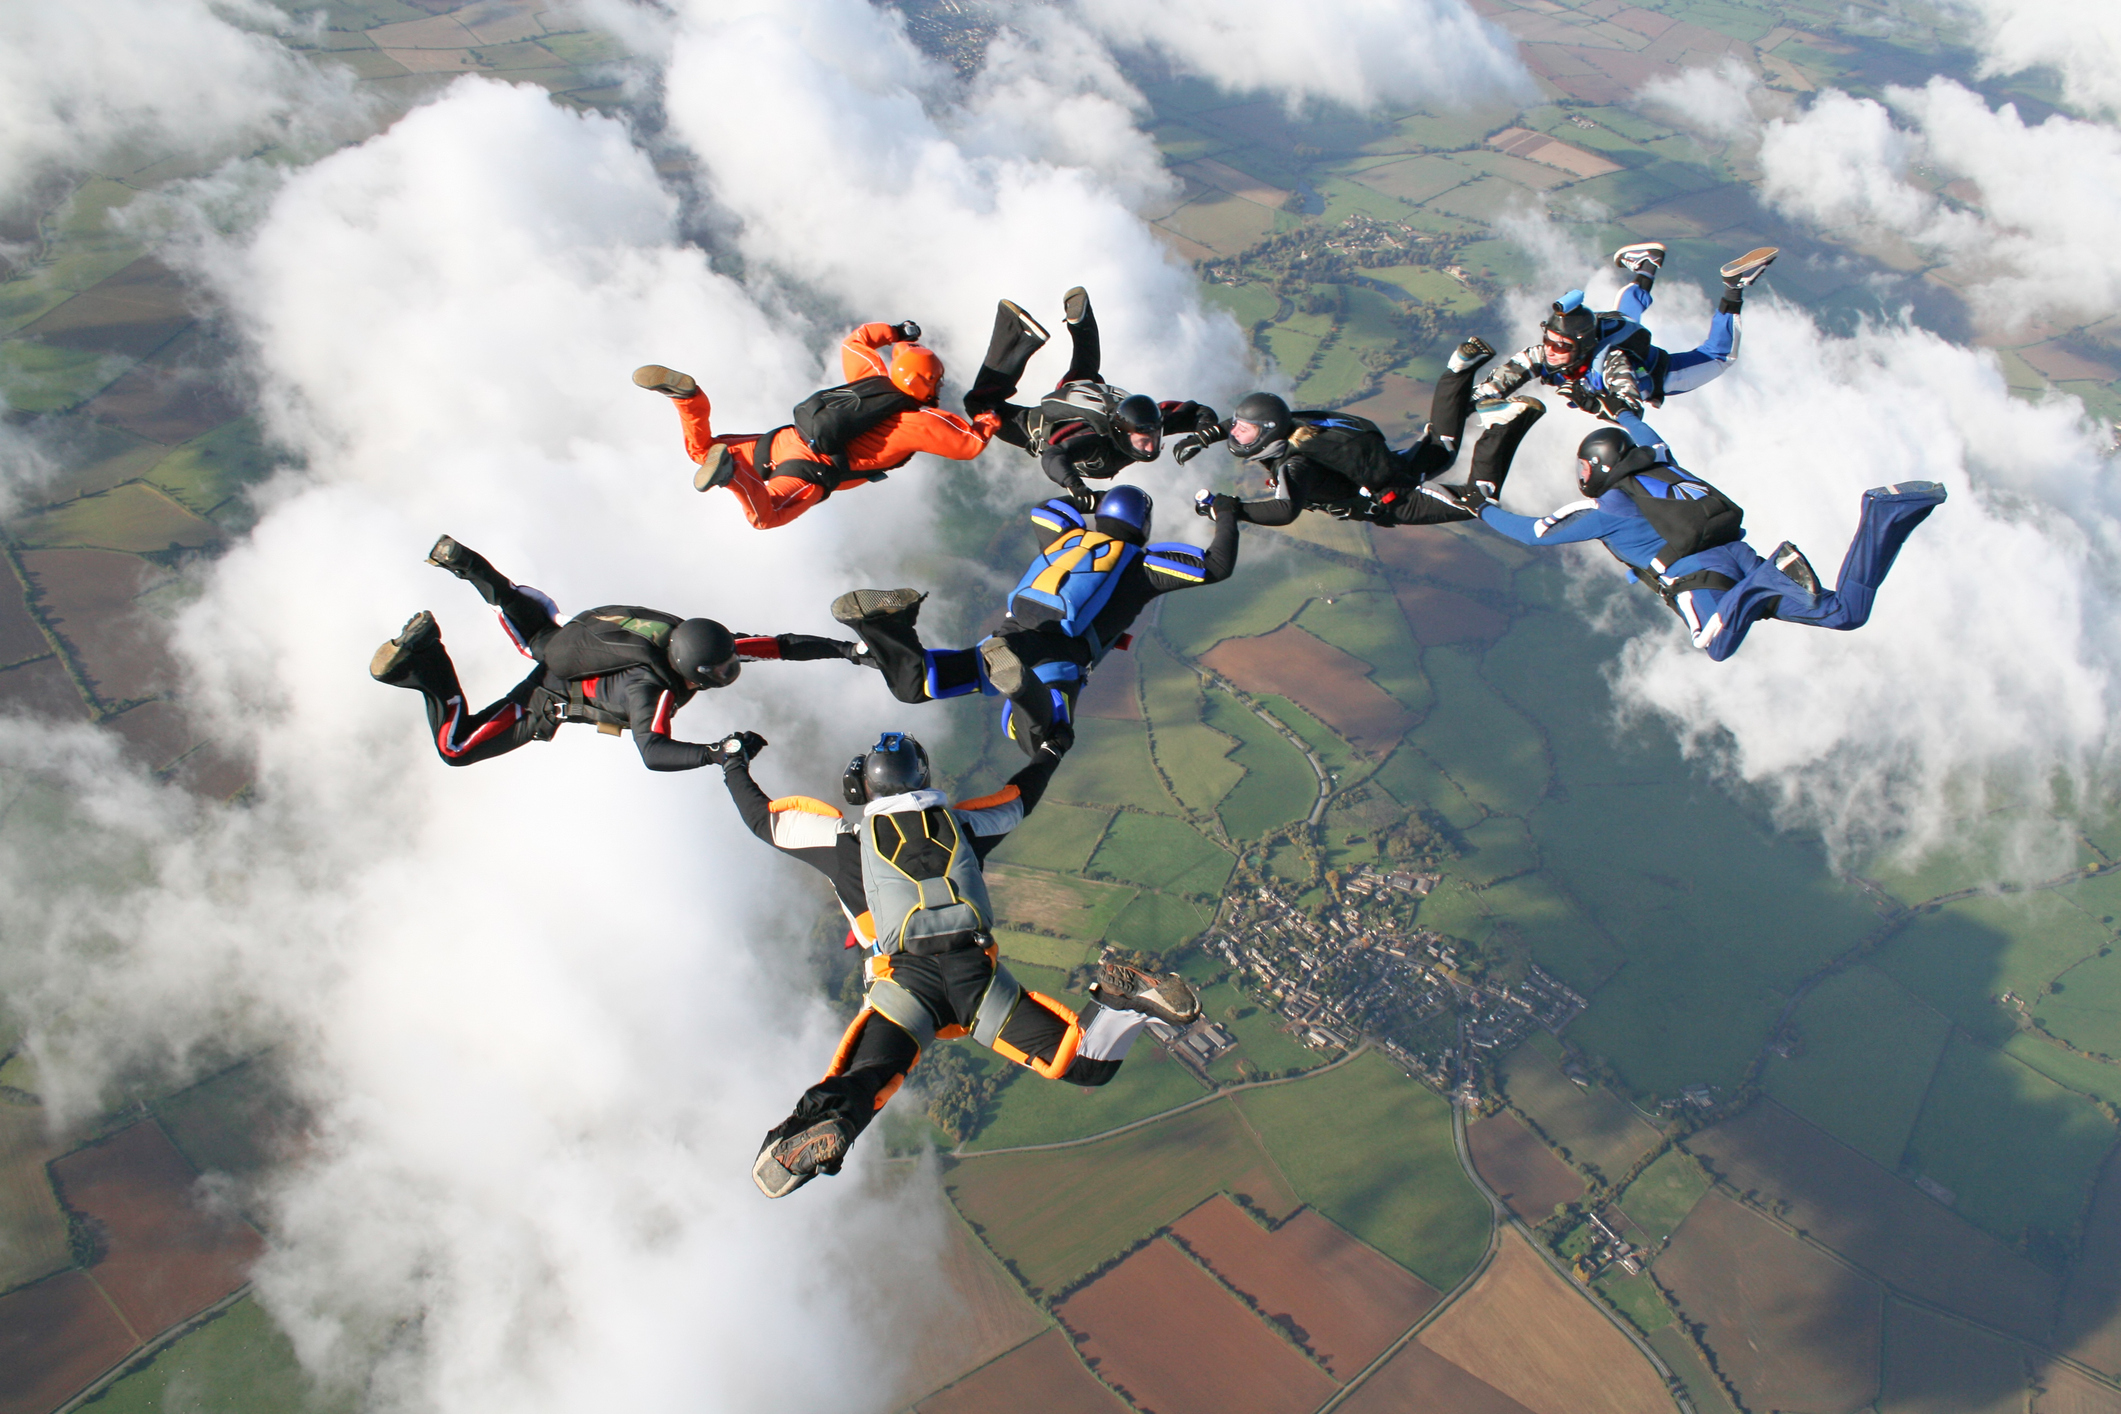 Insurance for Skydiving and Parachuting